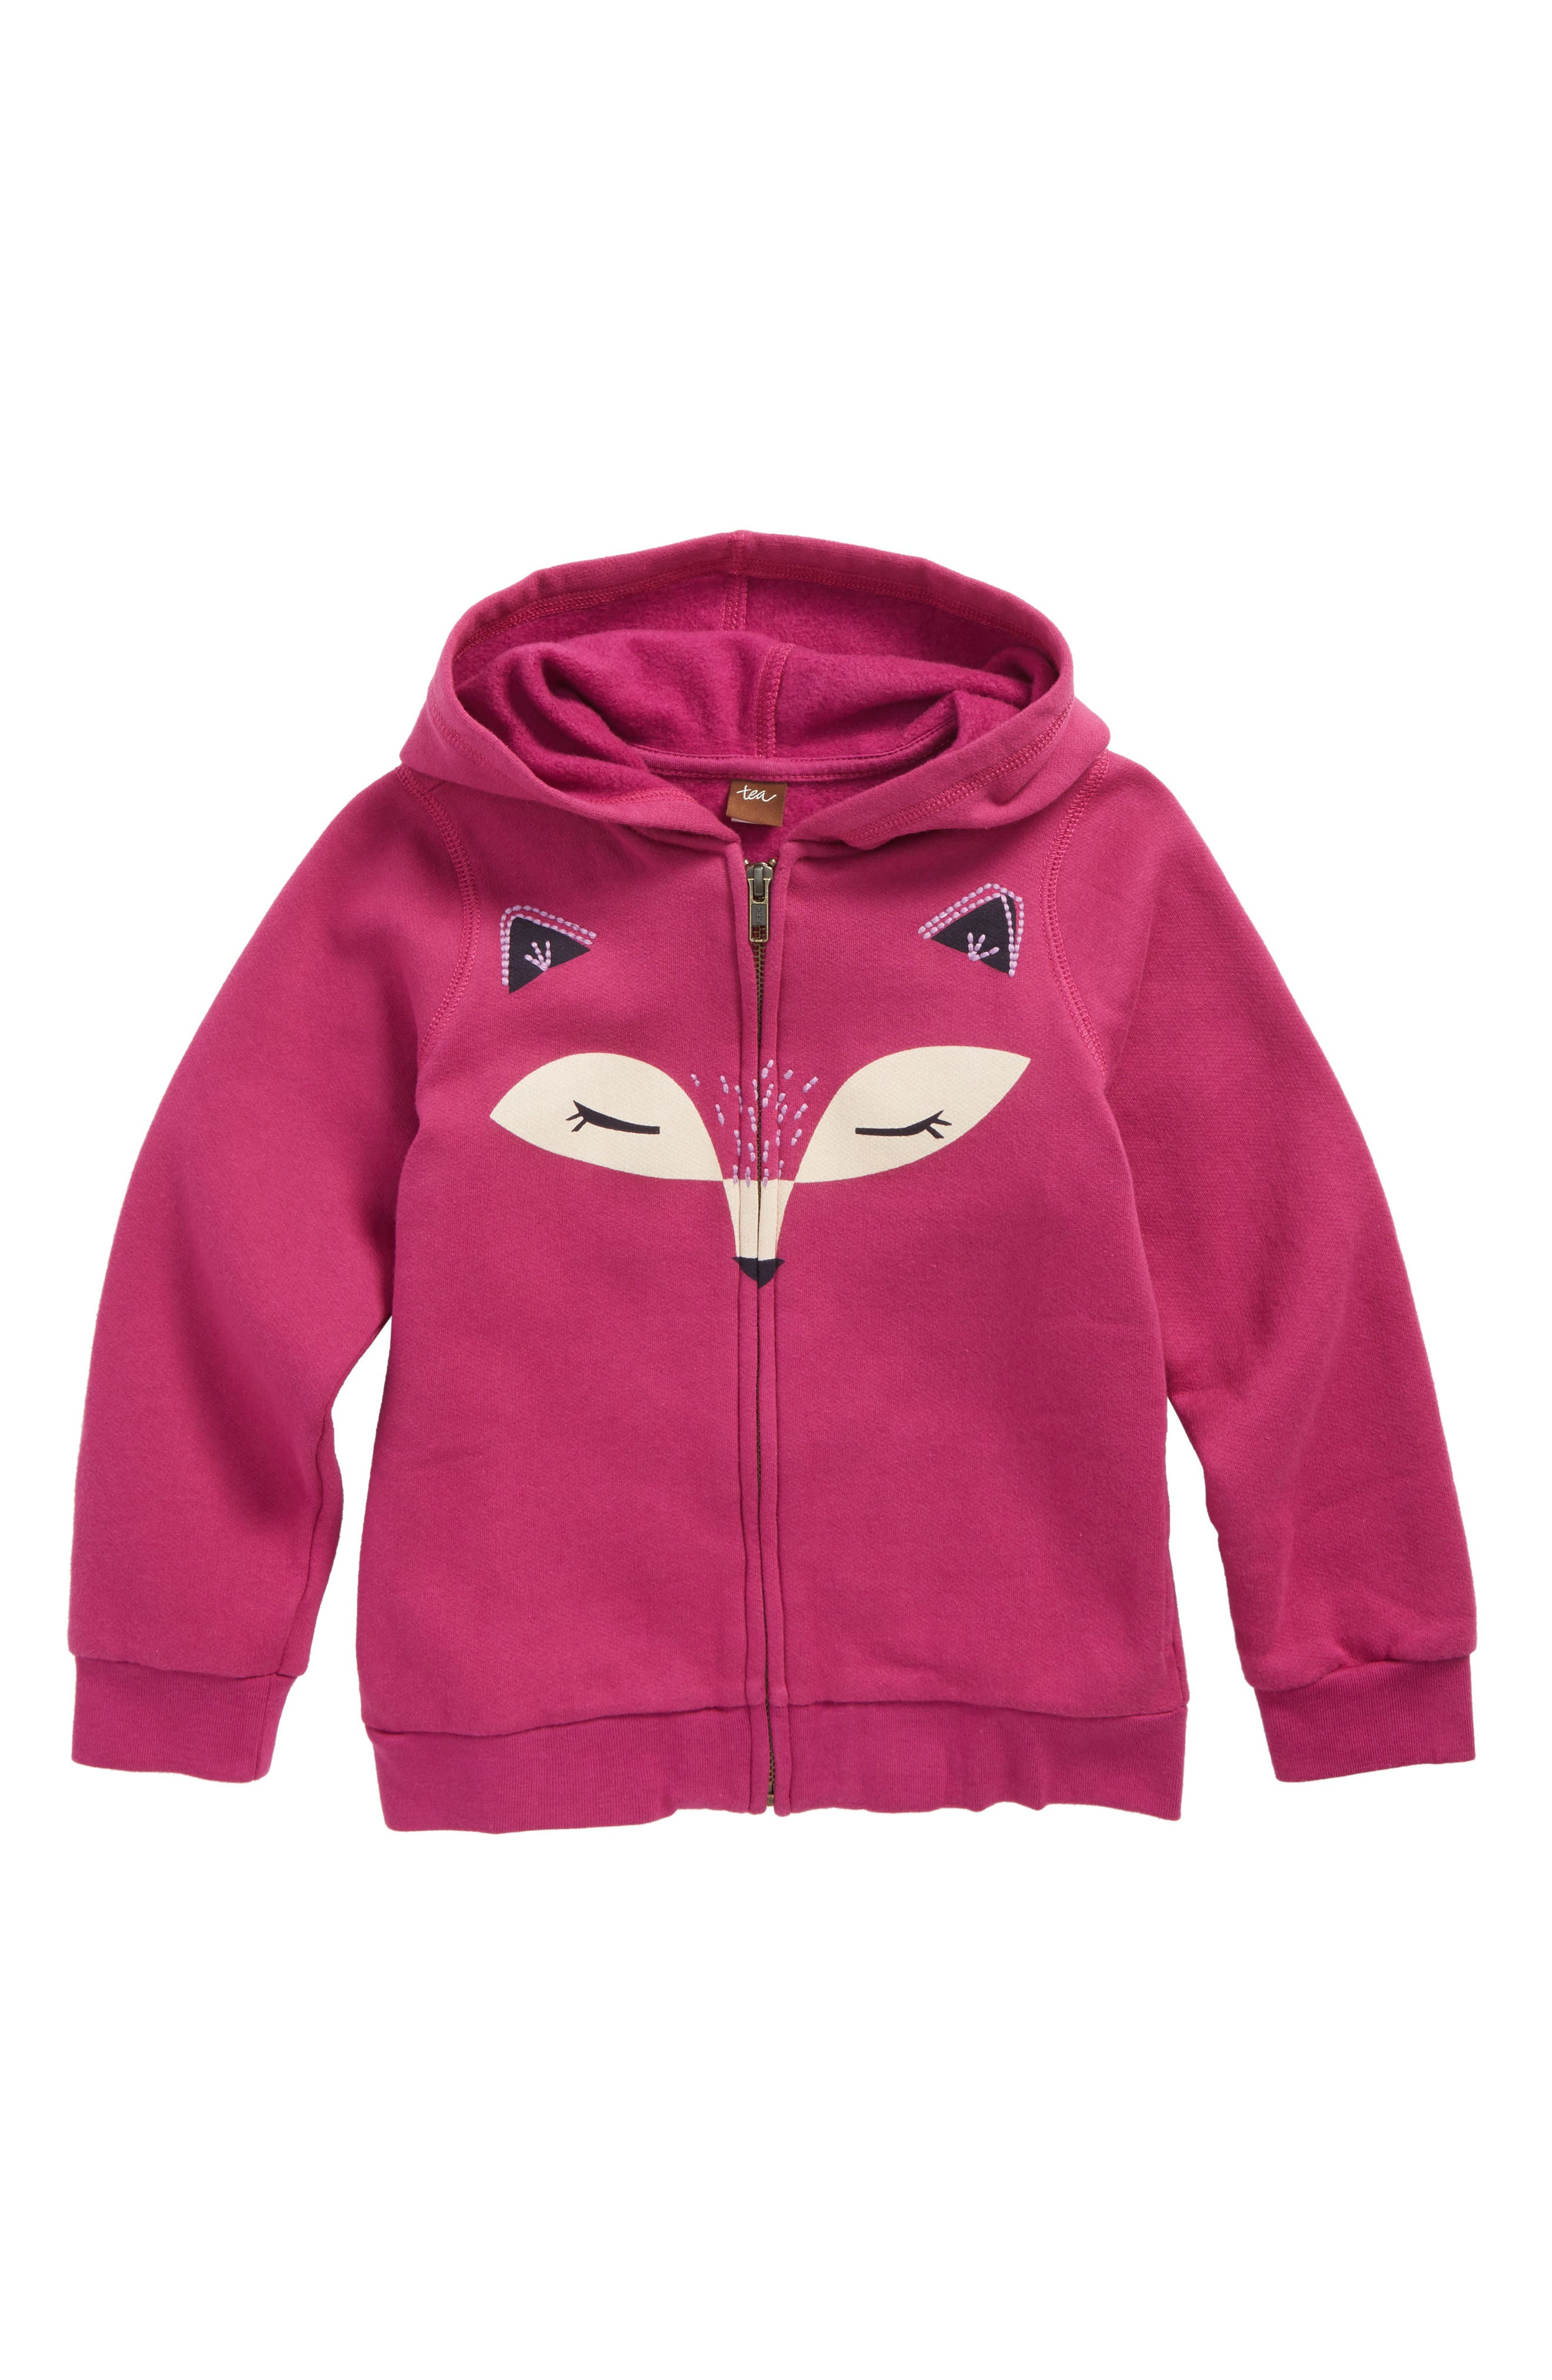 Alternate Image 1 Selected - Tea Collection Fox Face Zip Hoodie (Toddler Girls, Little Girls & Big Girls)